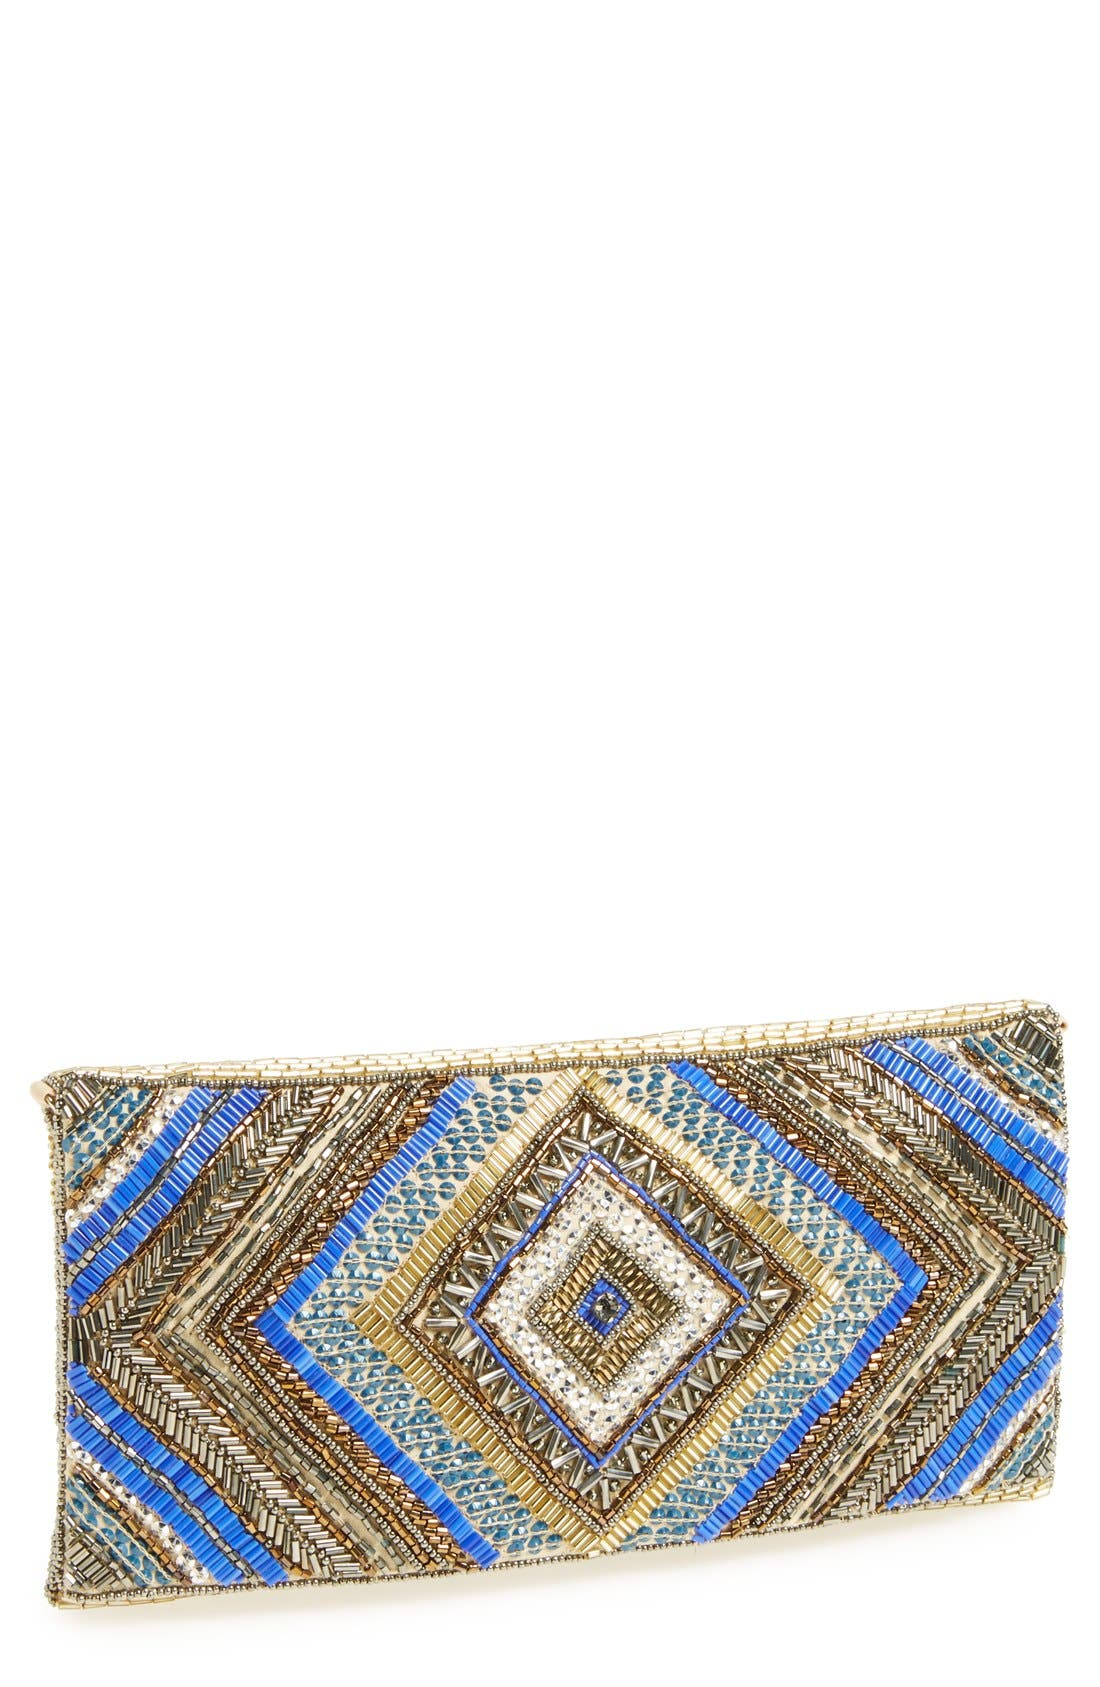 Alternate Image 1 Selected - Glint Beaded Flap Clutch